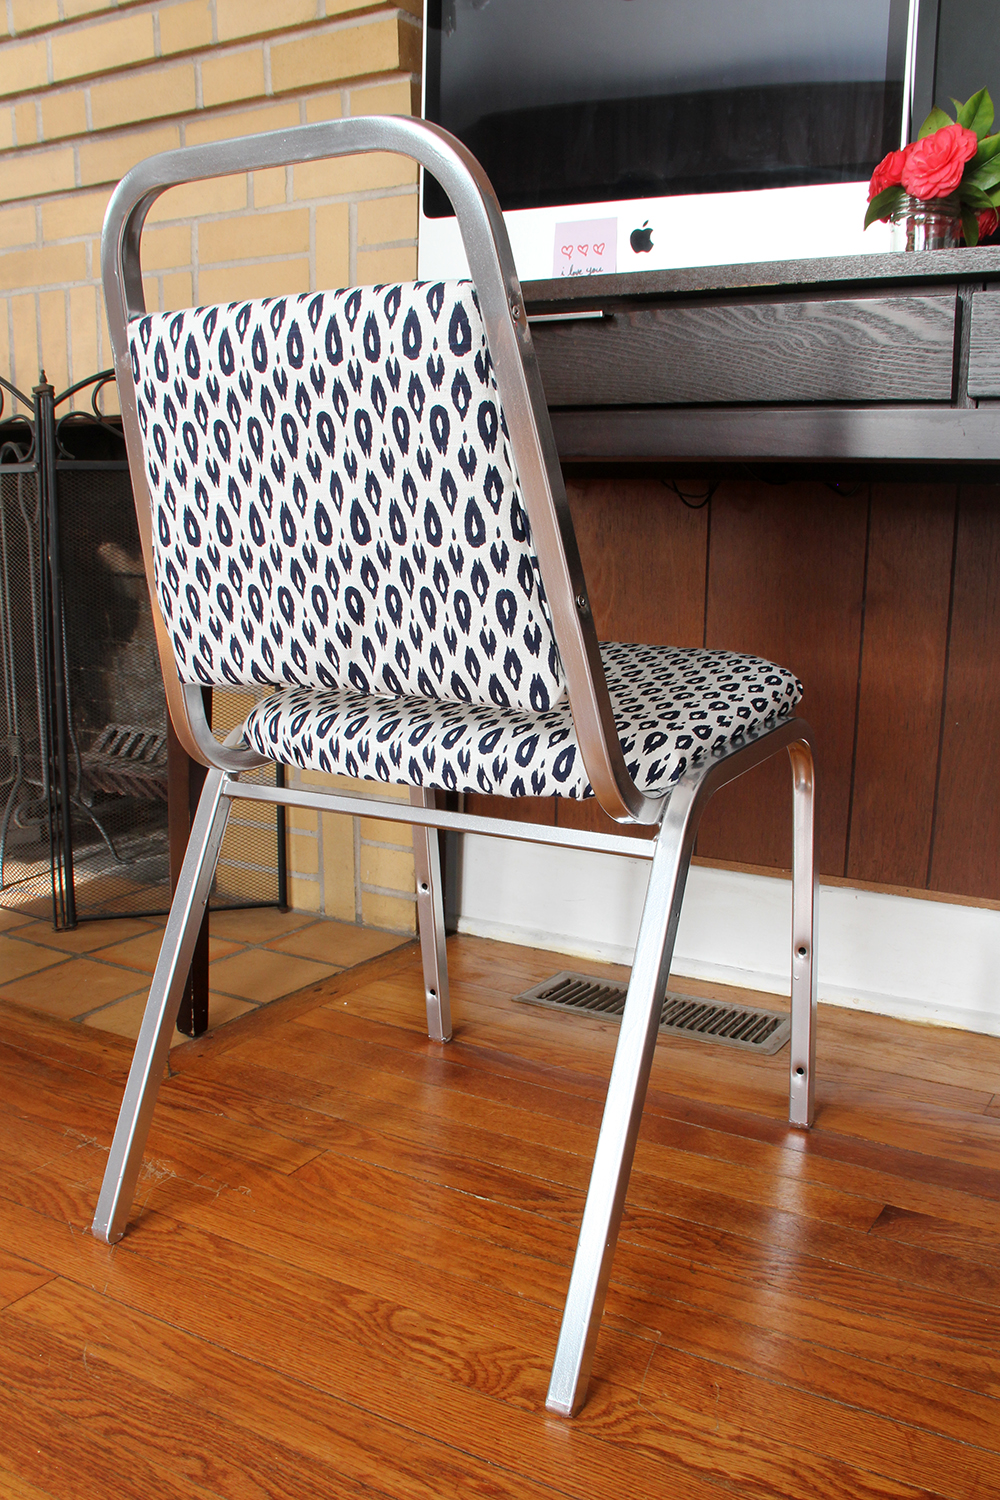 Desk Chair, Transformed!: See the before & after